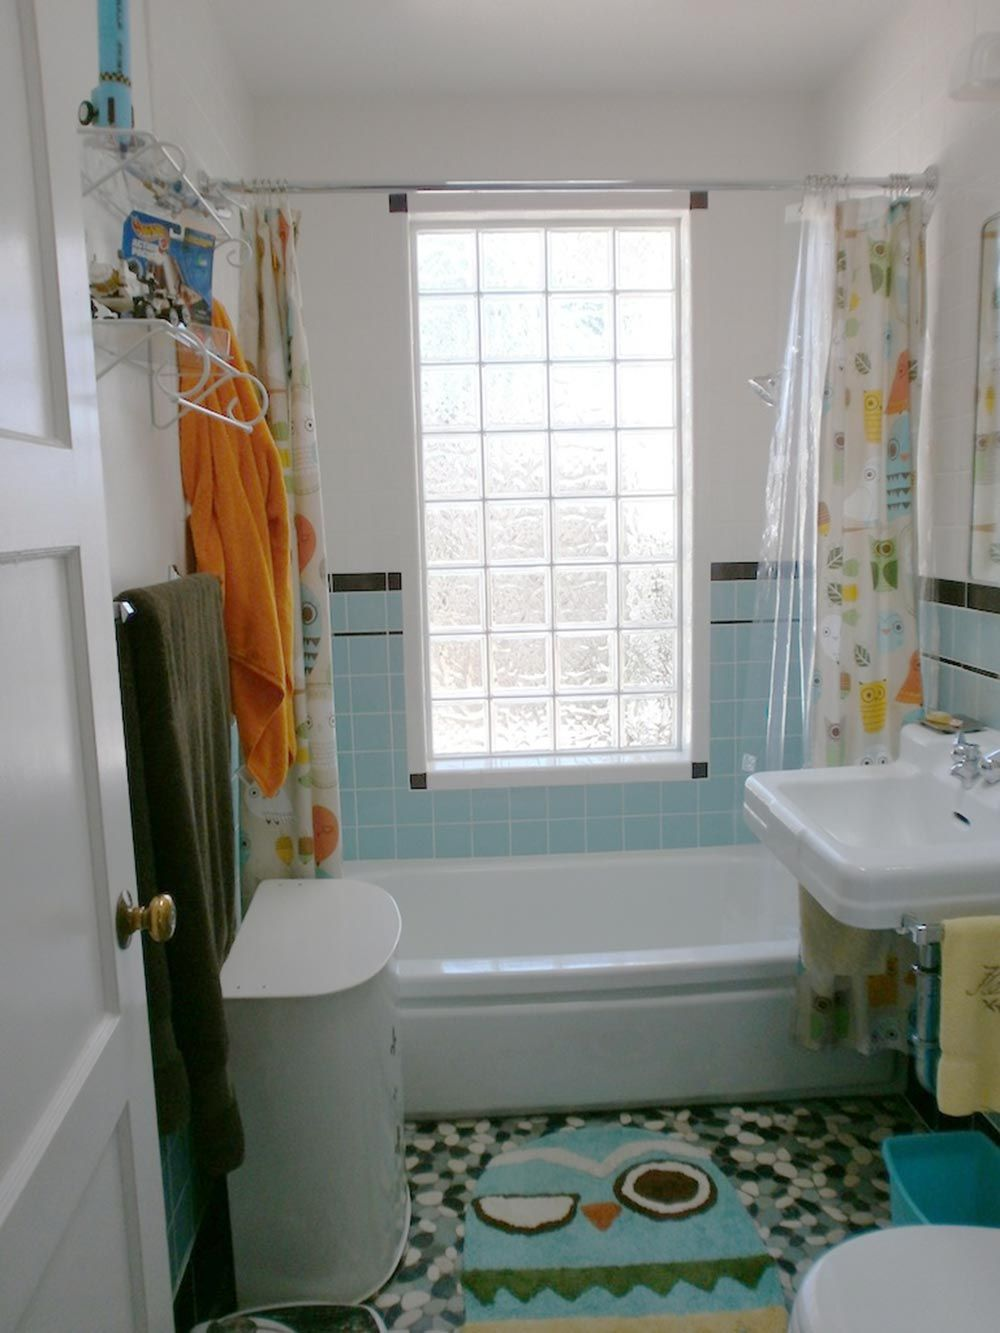 10 Retro Bathroom Ideas 2020 Revisiting The Past Trend In 2020